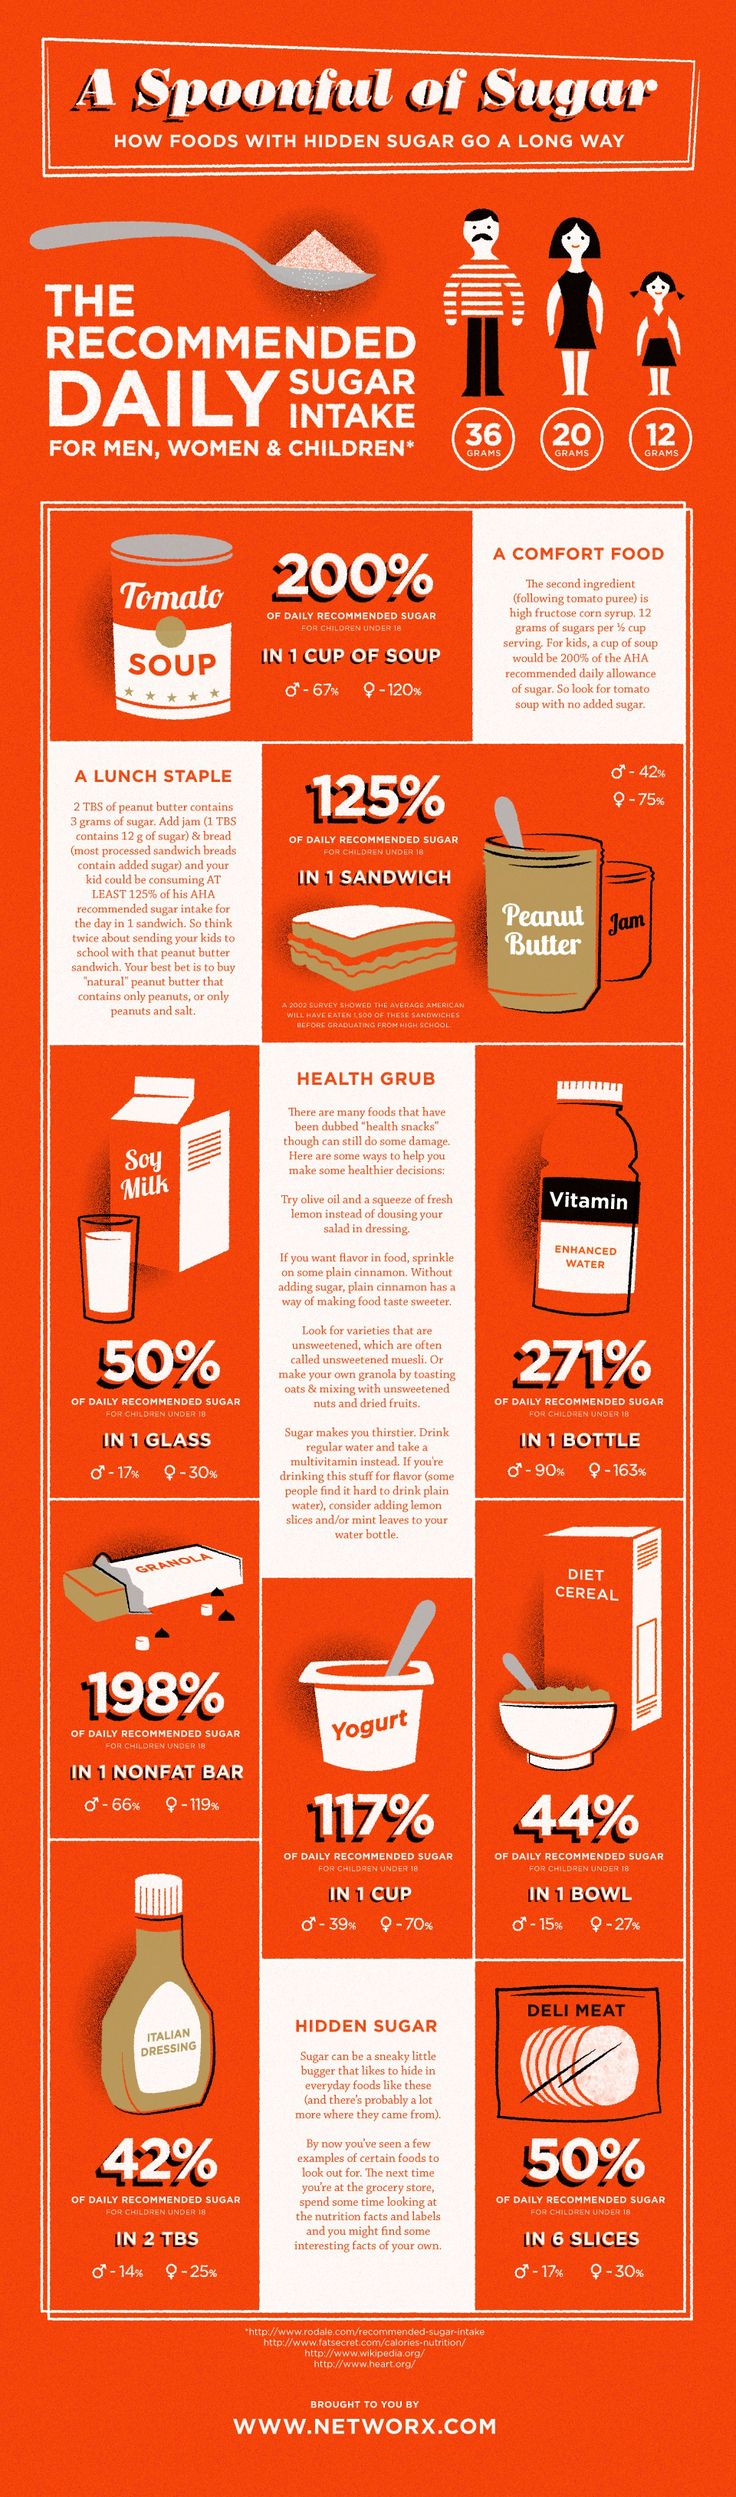 #Food+#Infographics+-+A+Spoonful+Of+Sugar:+How+Foods+With+Hidden+Sugar+Go+A+Long+Way+#Infografia